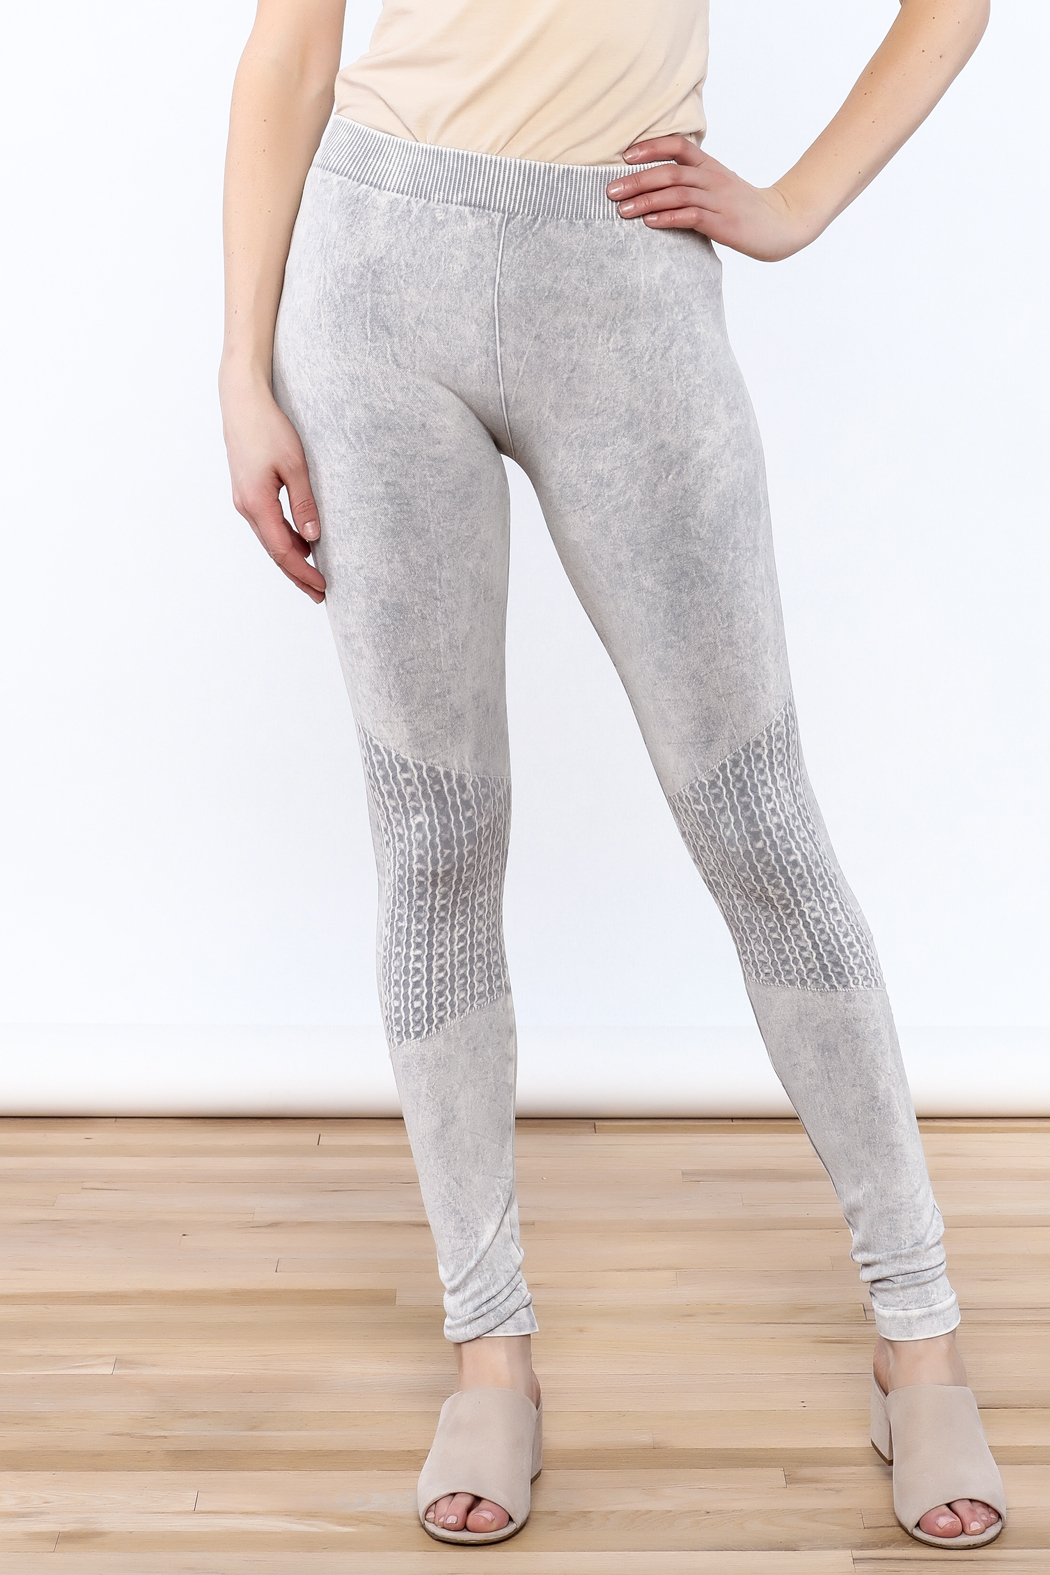 LHTX Light Gray Leggings from Delaware by The Gift Horse u2014 Shoptiques